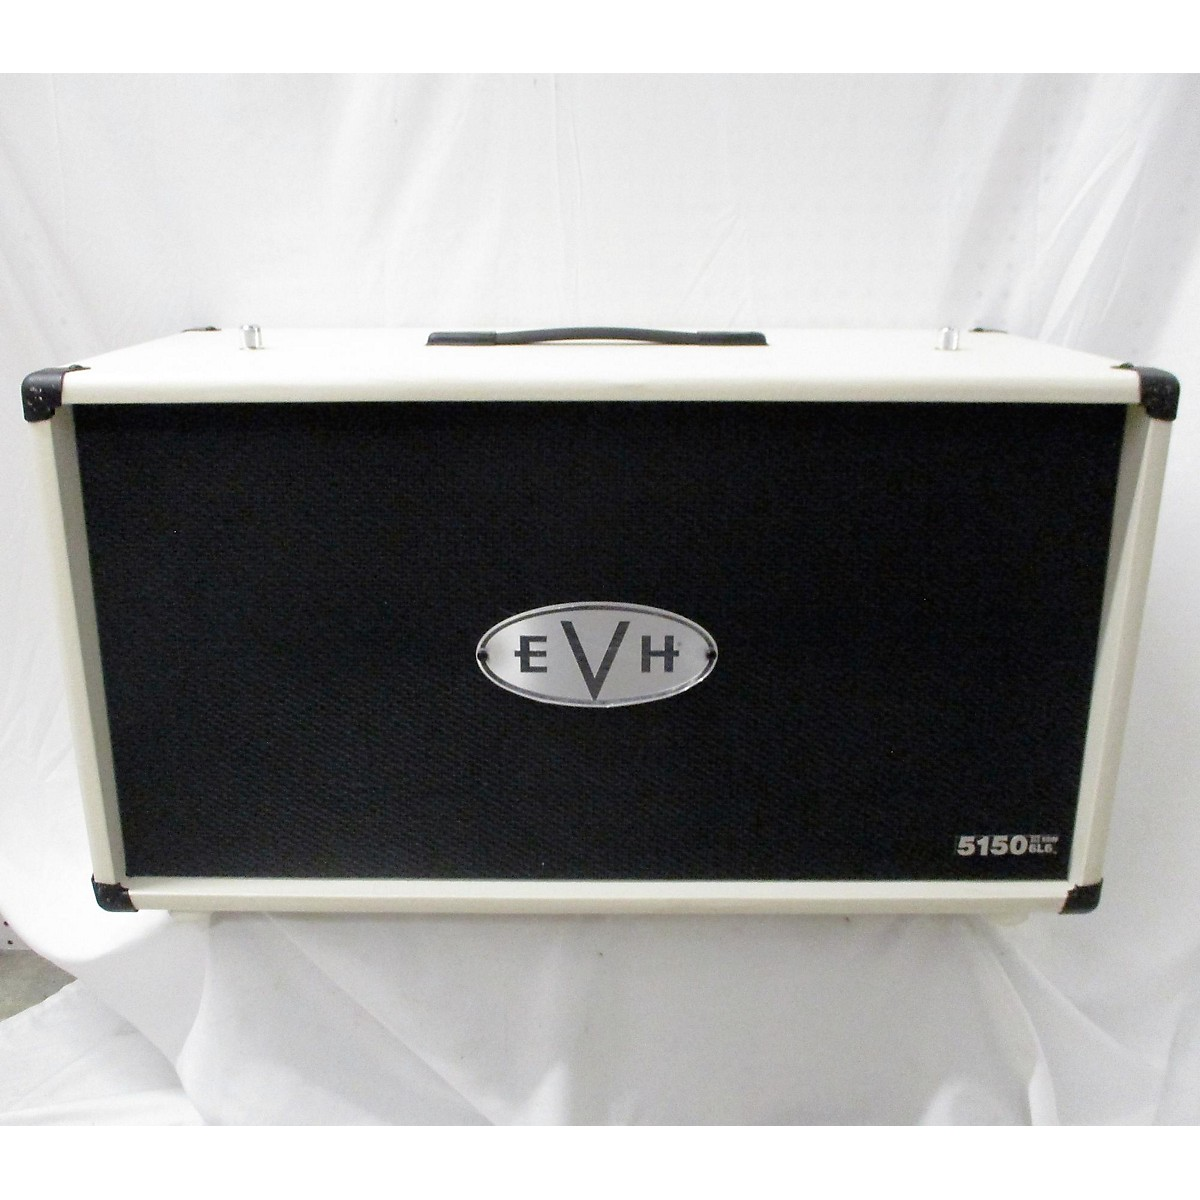 EVH 5150 III 6L6 50W Footswitch